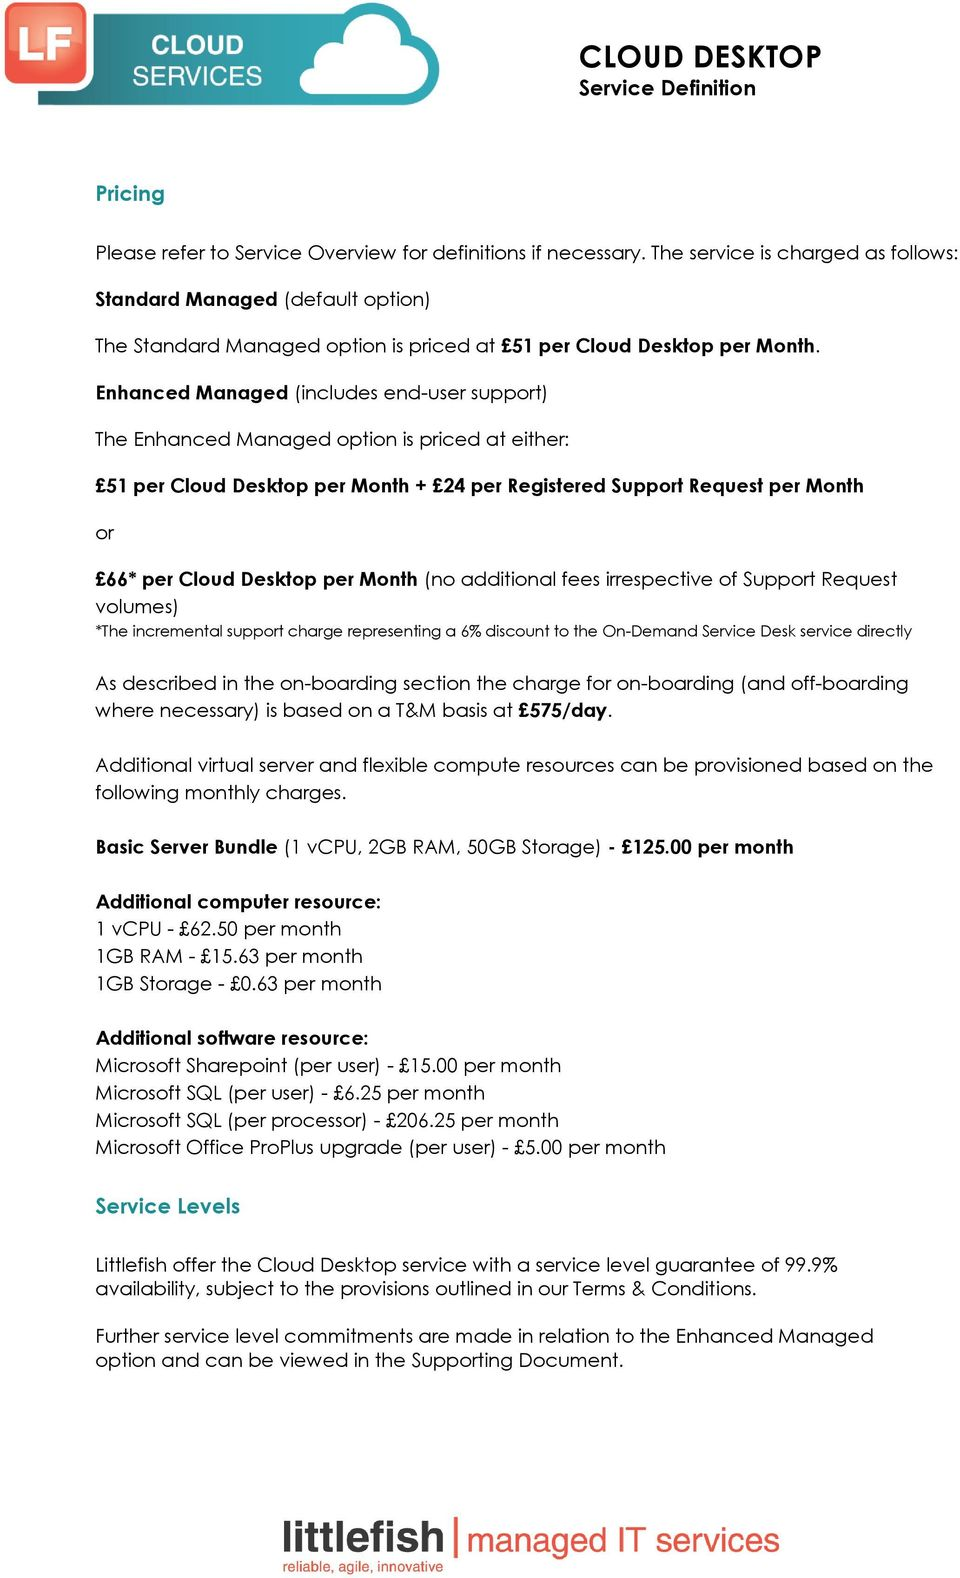 Enhanced Managed (includes end-user support) The Enhanced Managed option is priced at either: 51 per Cloud Desktop per Month + 24 per Registered Support Request per Month or 66* per Cloud Desktop per